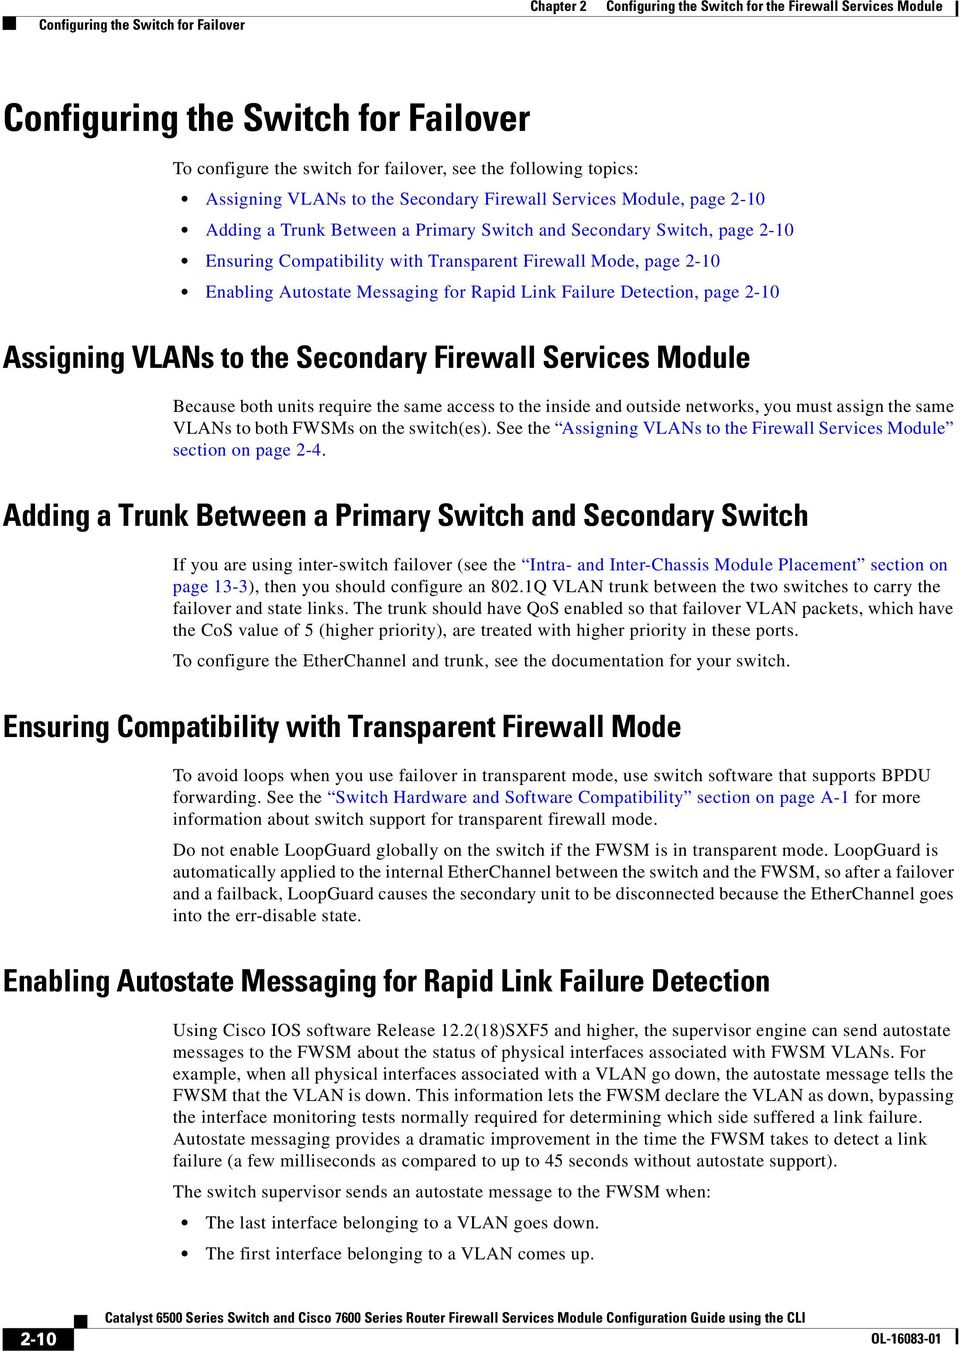 Configuring The Switch For Firewall Services Module Pdf Note Ports On That Are Connected To Asa Must Be In Failure Detection Page 2 10 Assigning Vlans Secondary Because